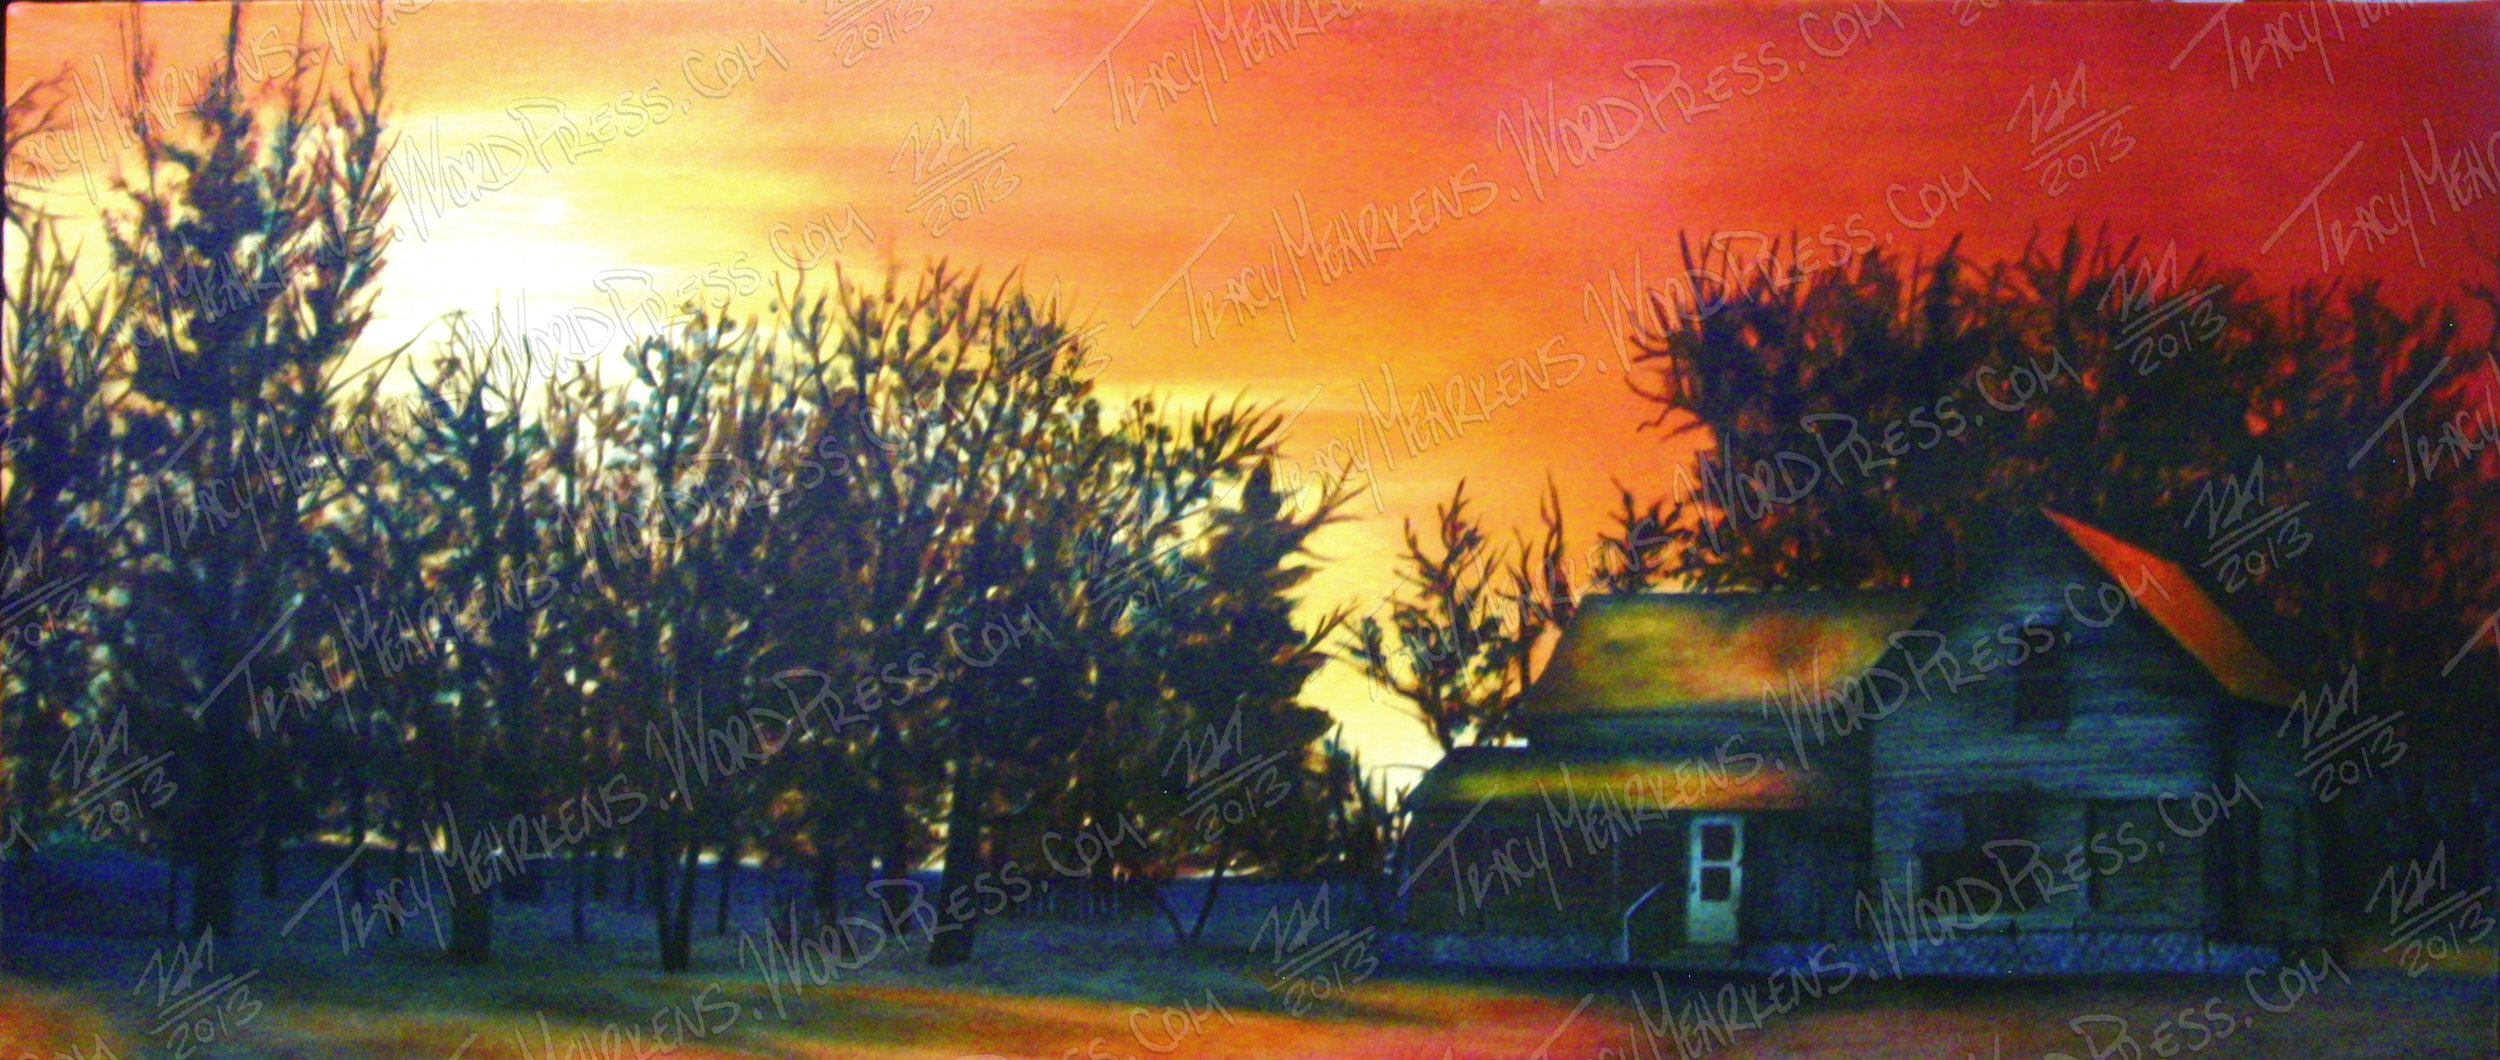 Wondrous Morning. Oil on Canvas. 48x20 in. 2013.